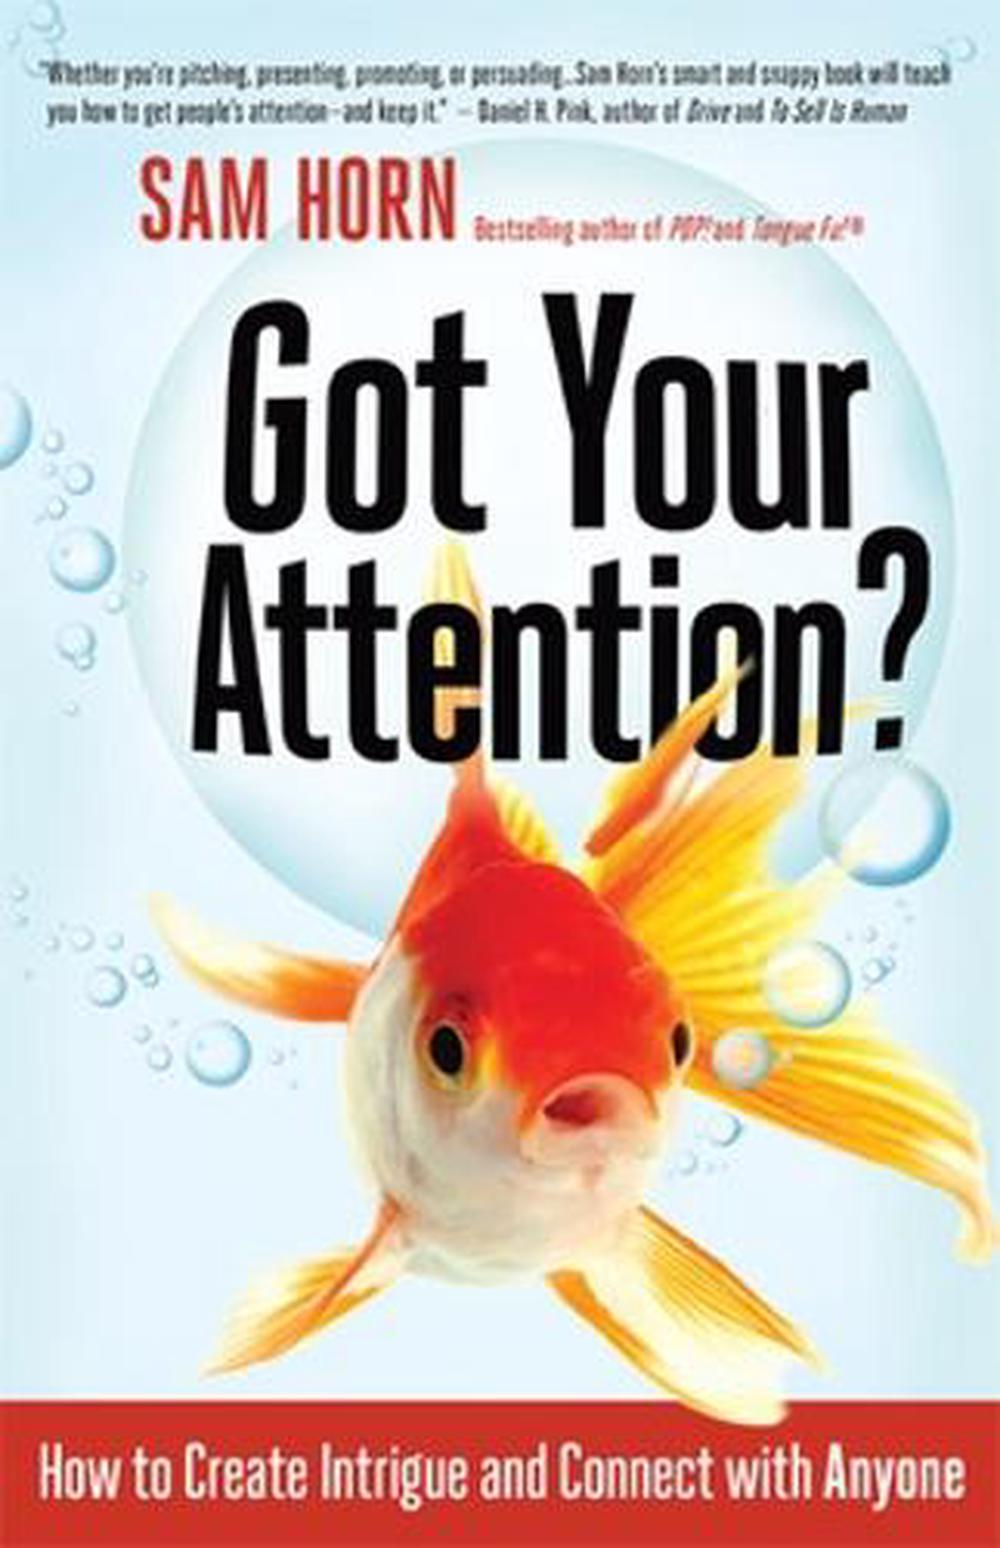 Got Your Attention? How to Create Intrigue and Connect with